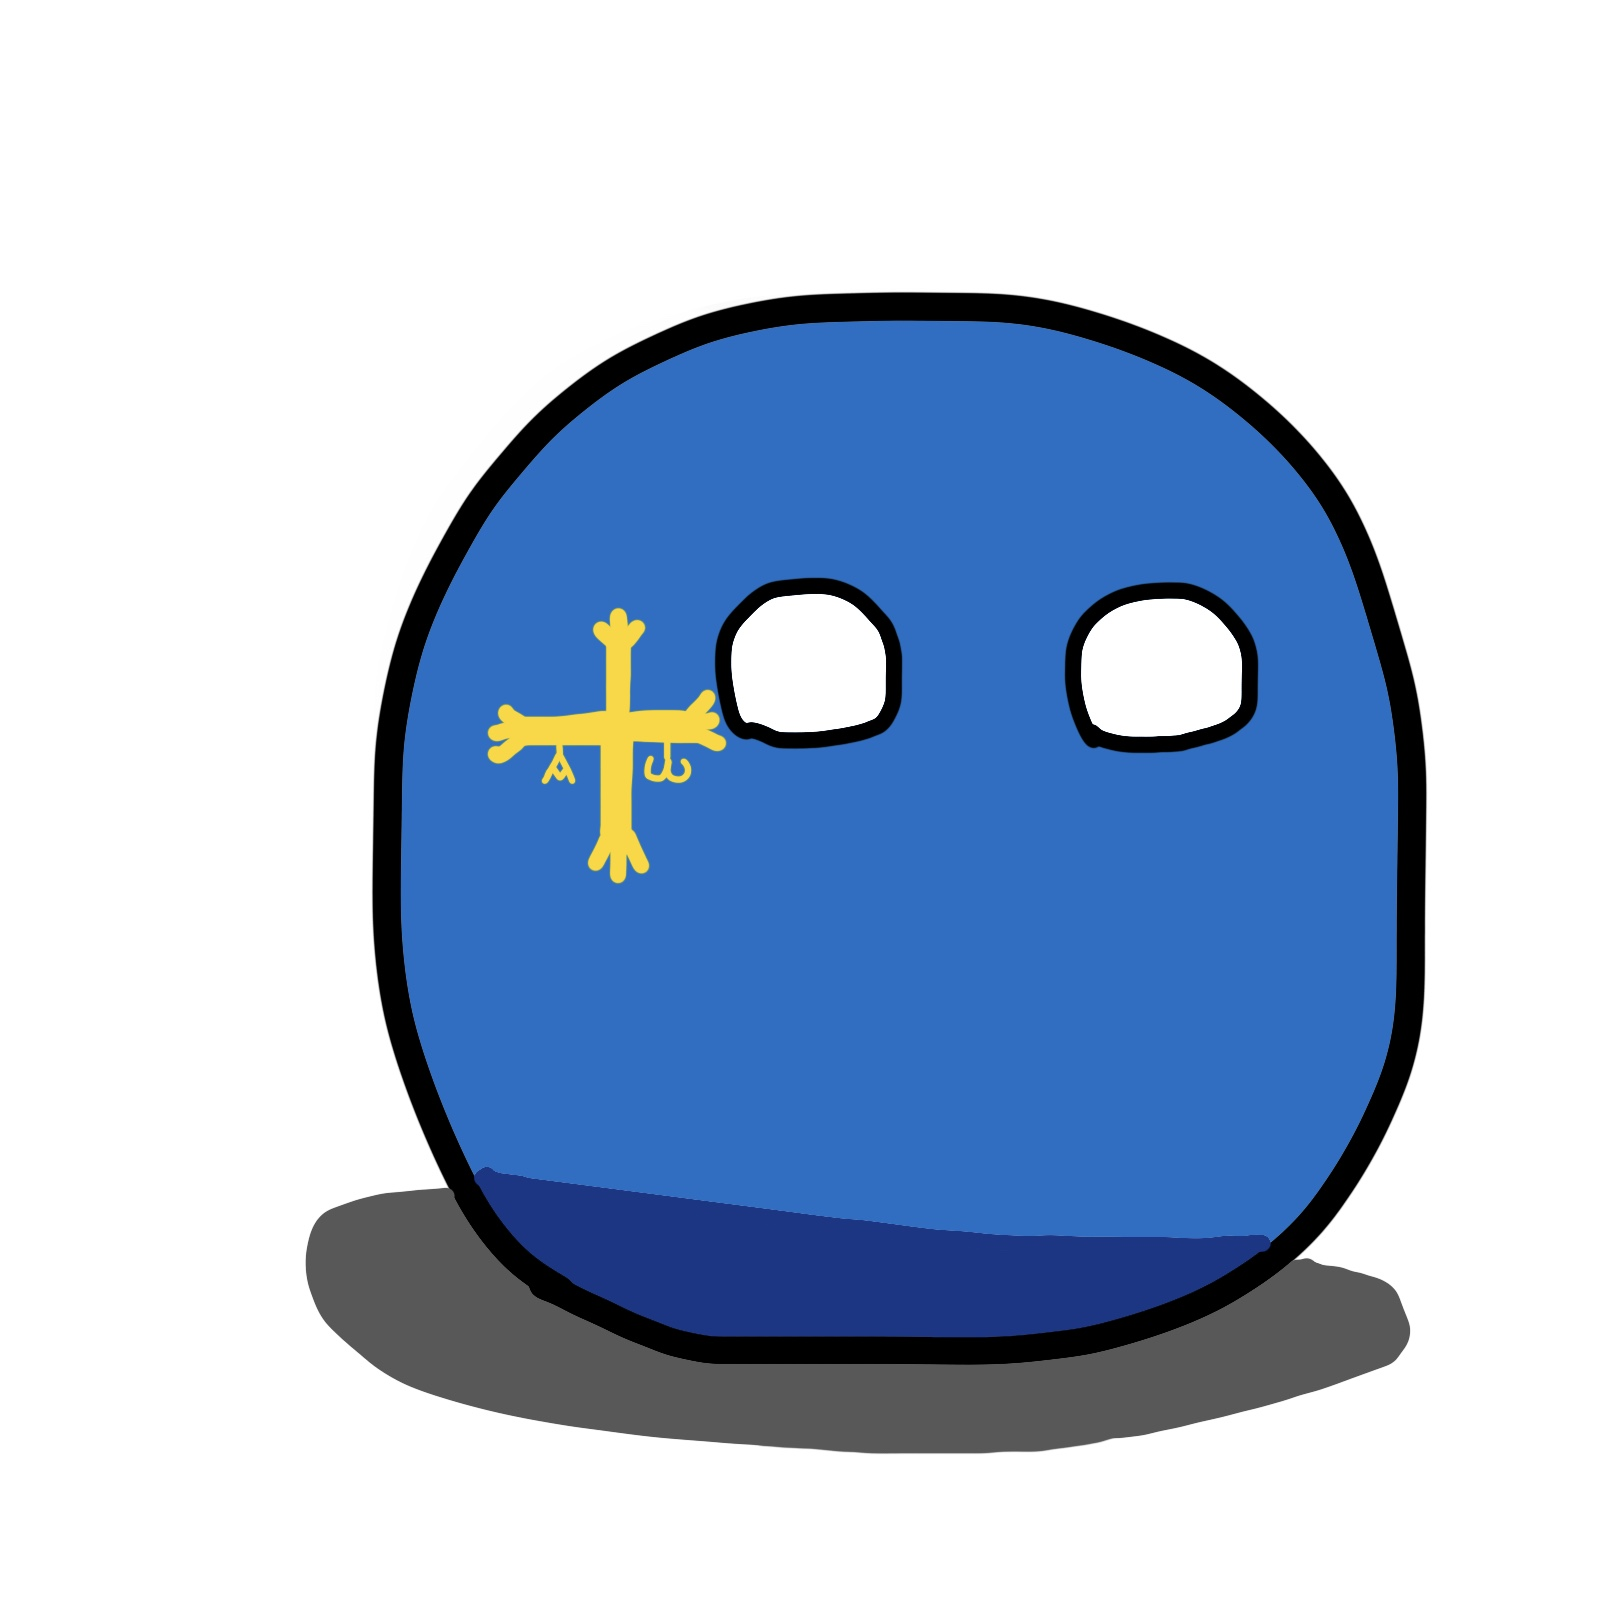 Kingdom of Asturiasball